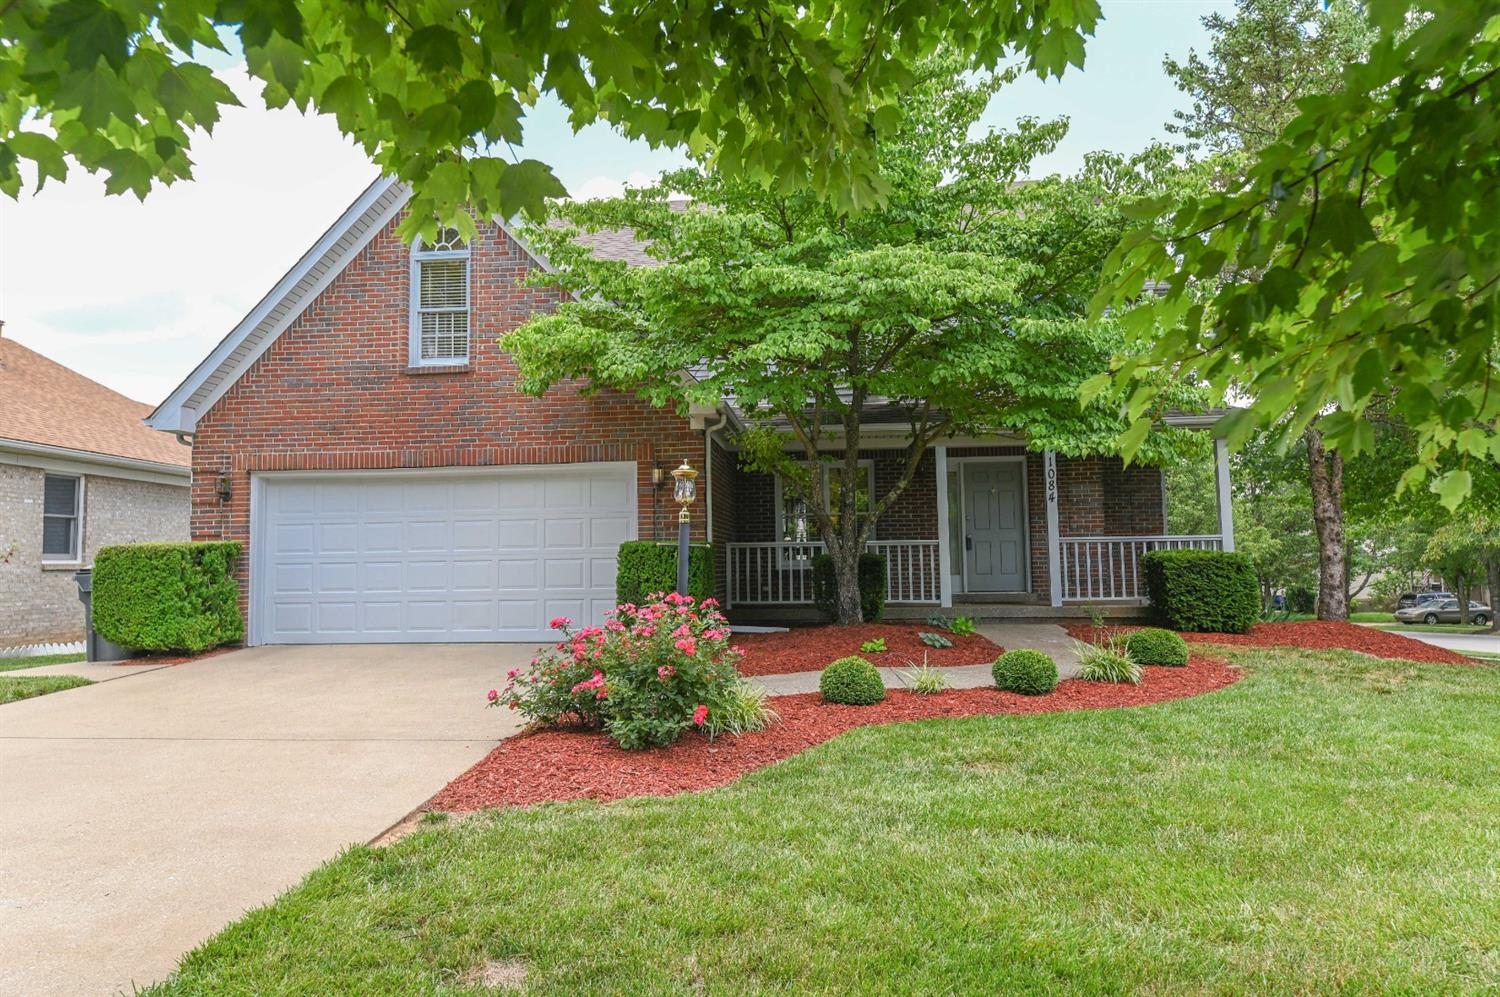 1084 Autumn Ridge Dr, Lexington, KY 40509